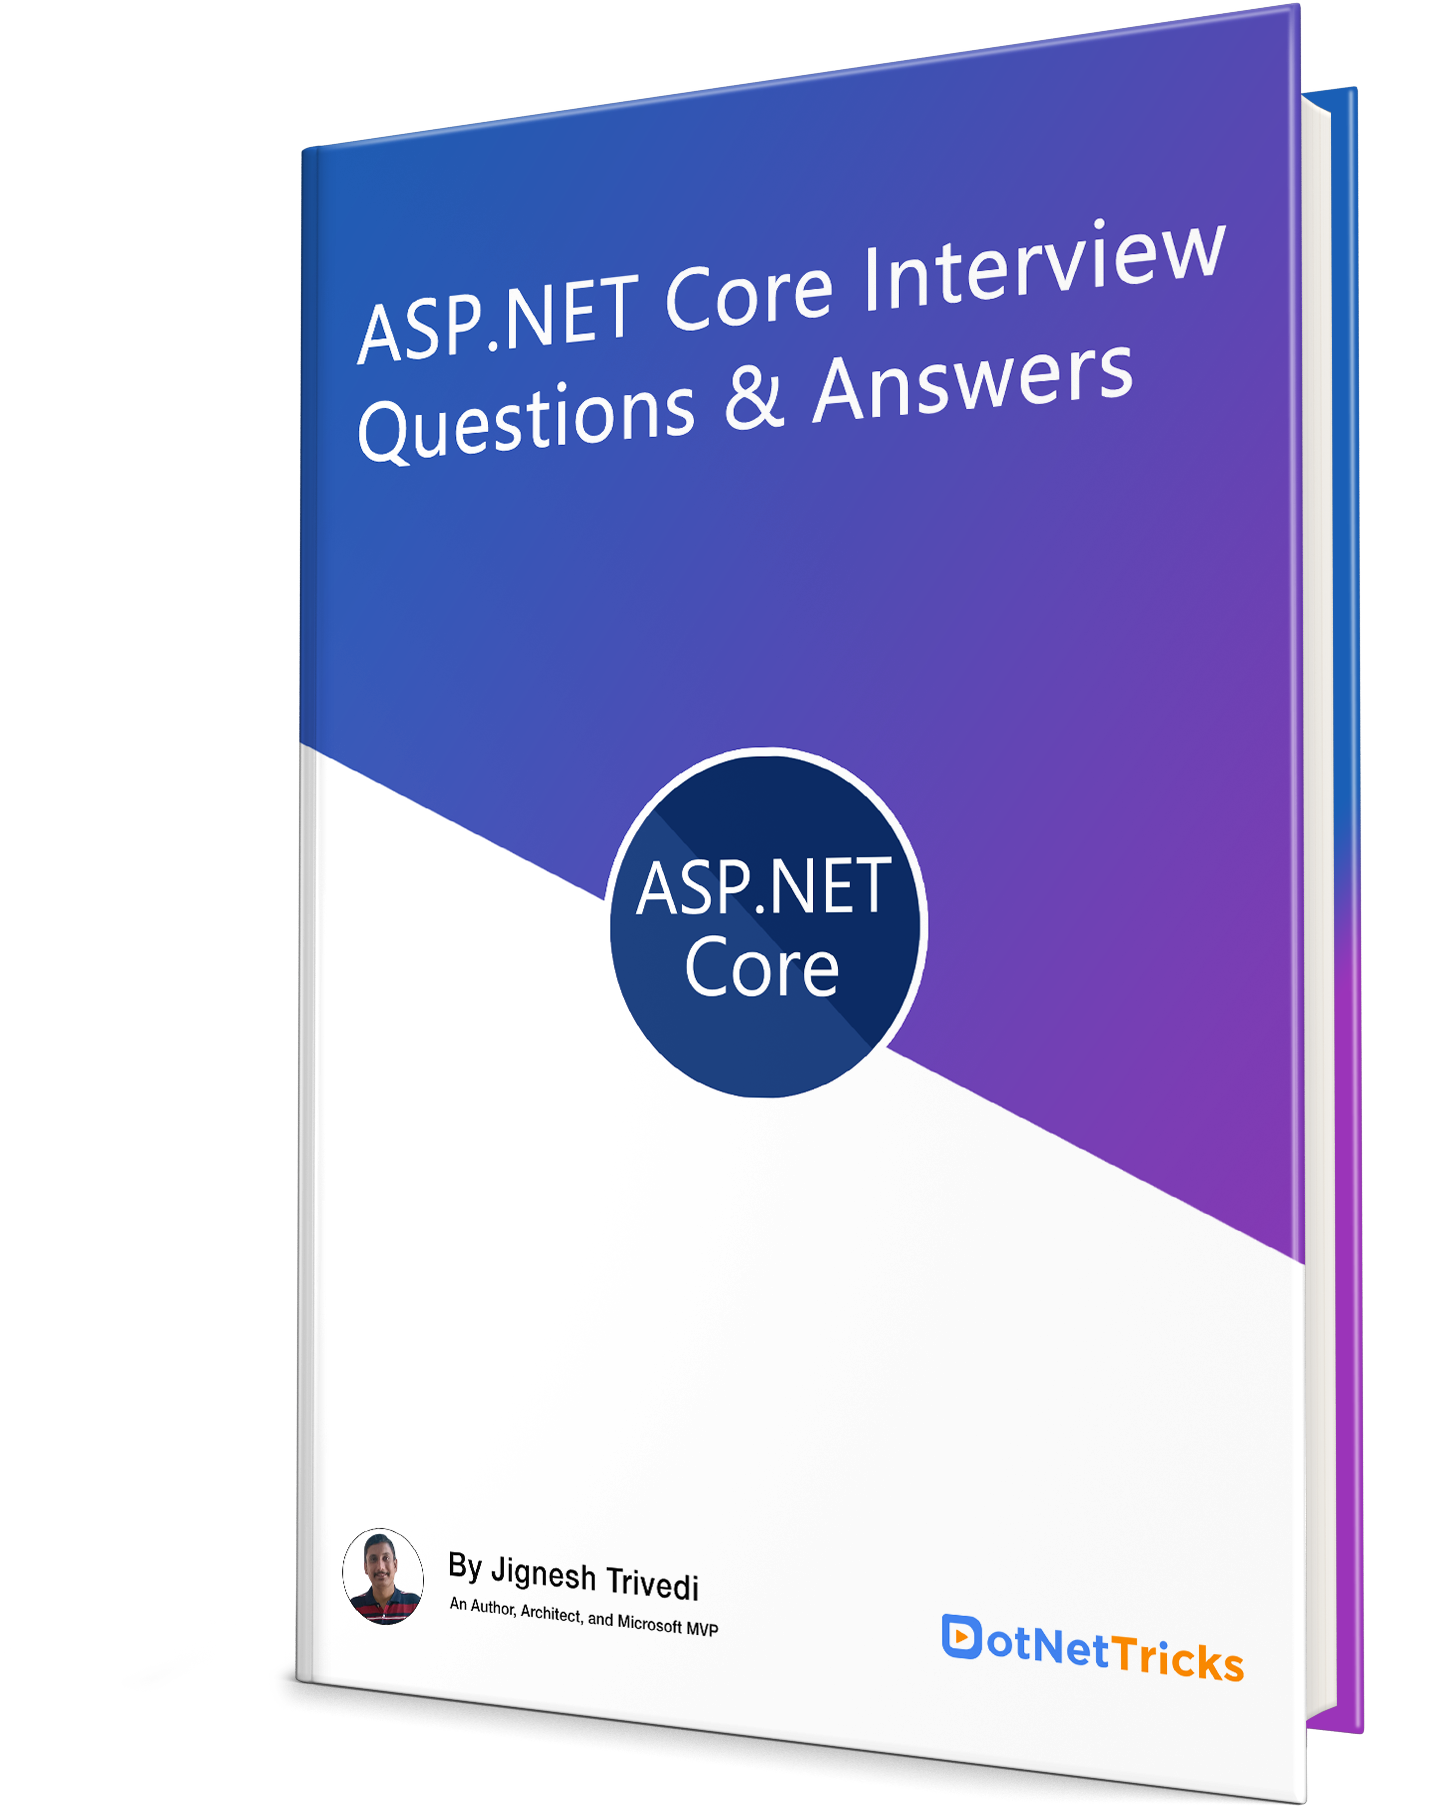 ASP.NET Core Interview Questions & Answers eBook